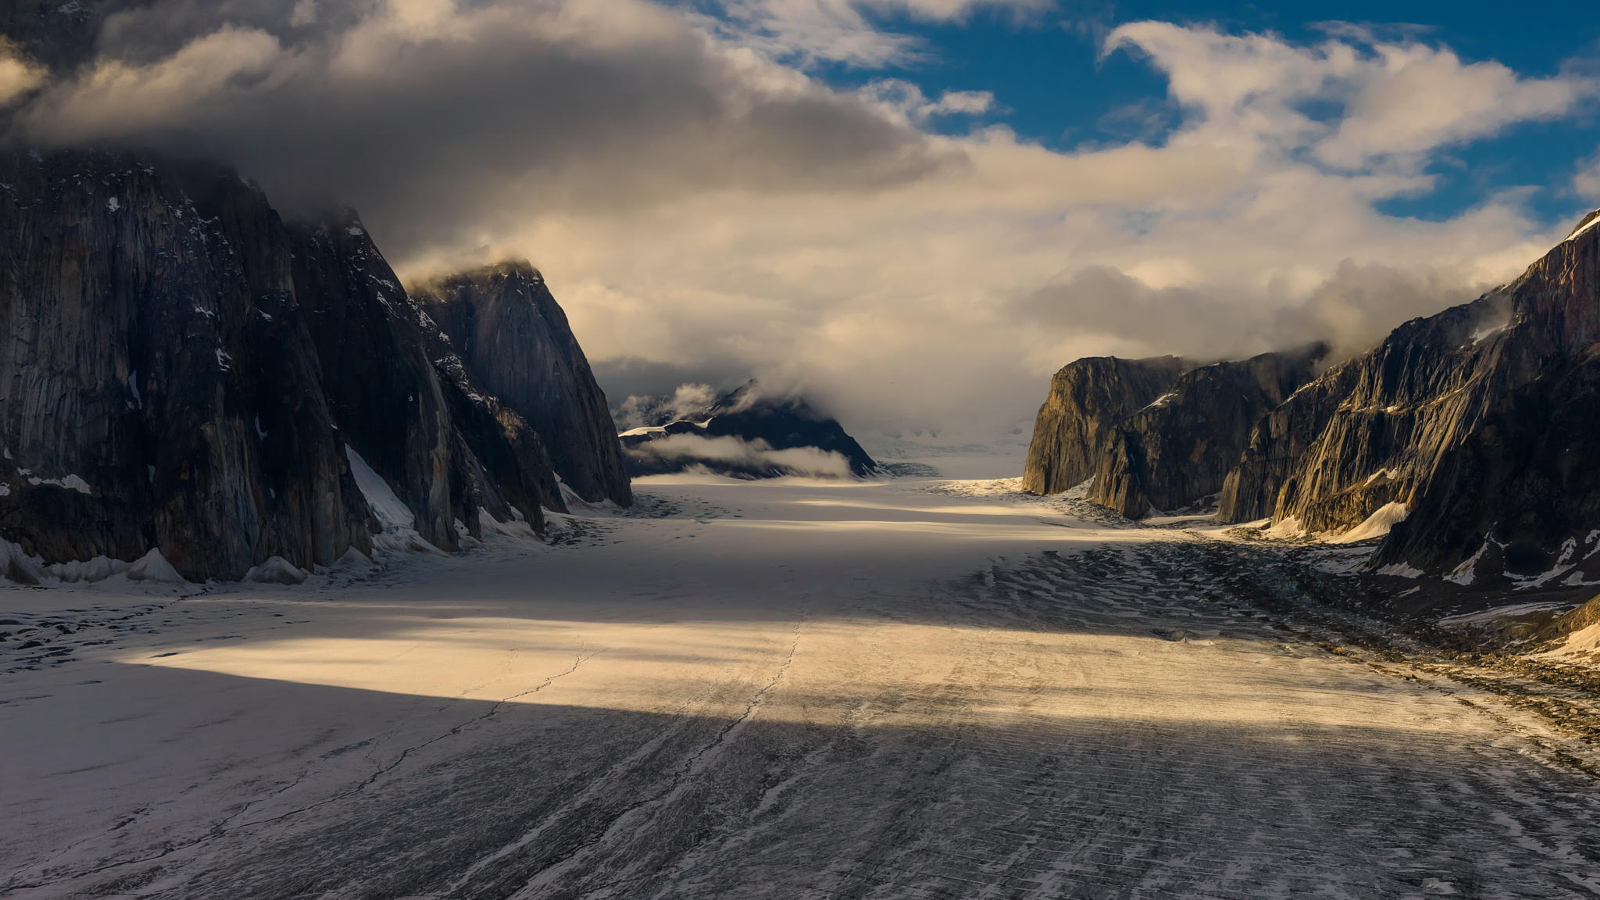 Searching for Light: The Sweet Suffering of Landscape Photography